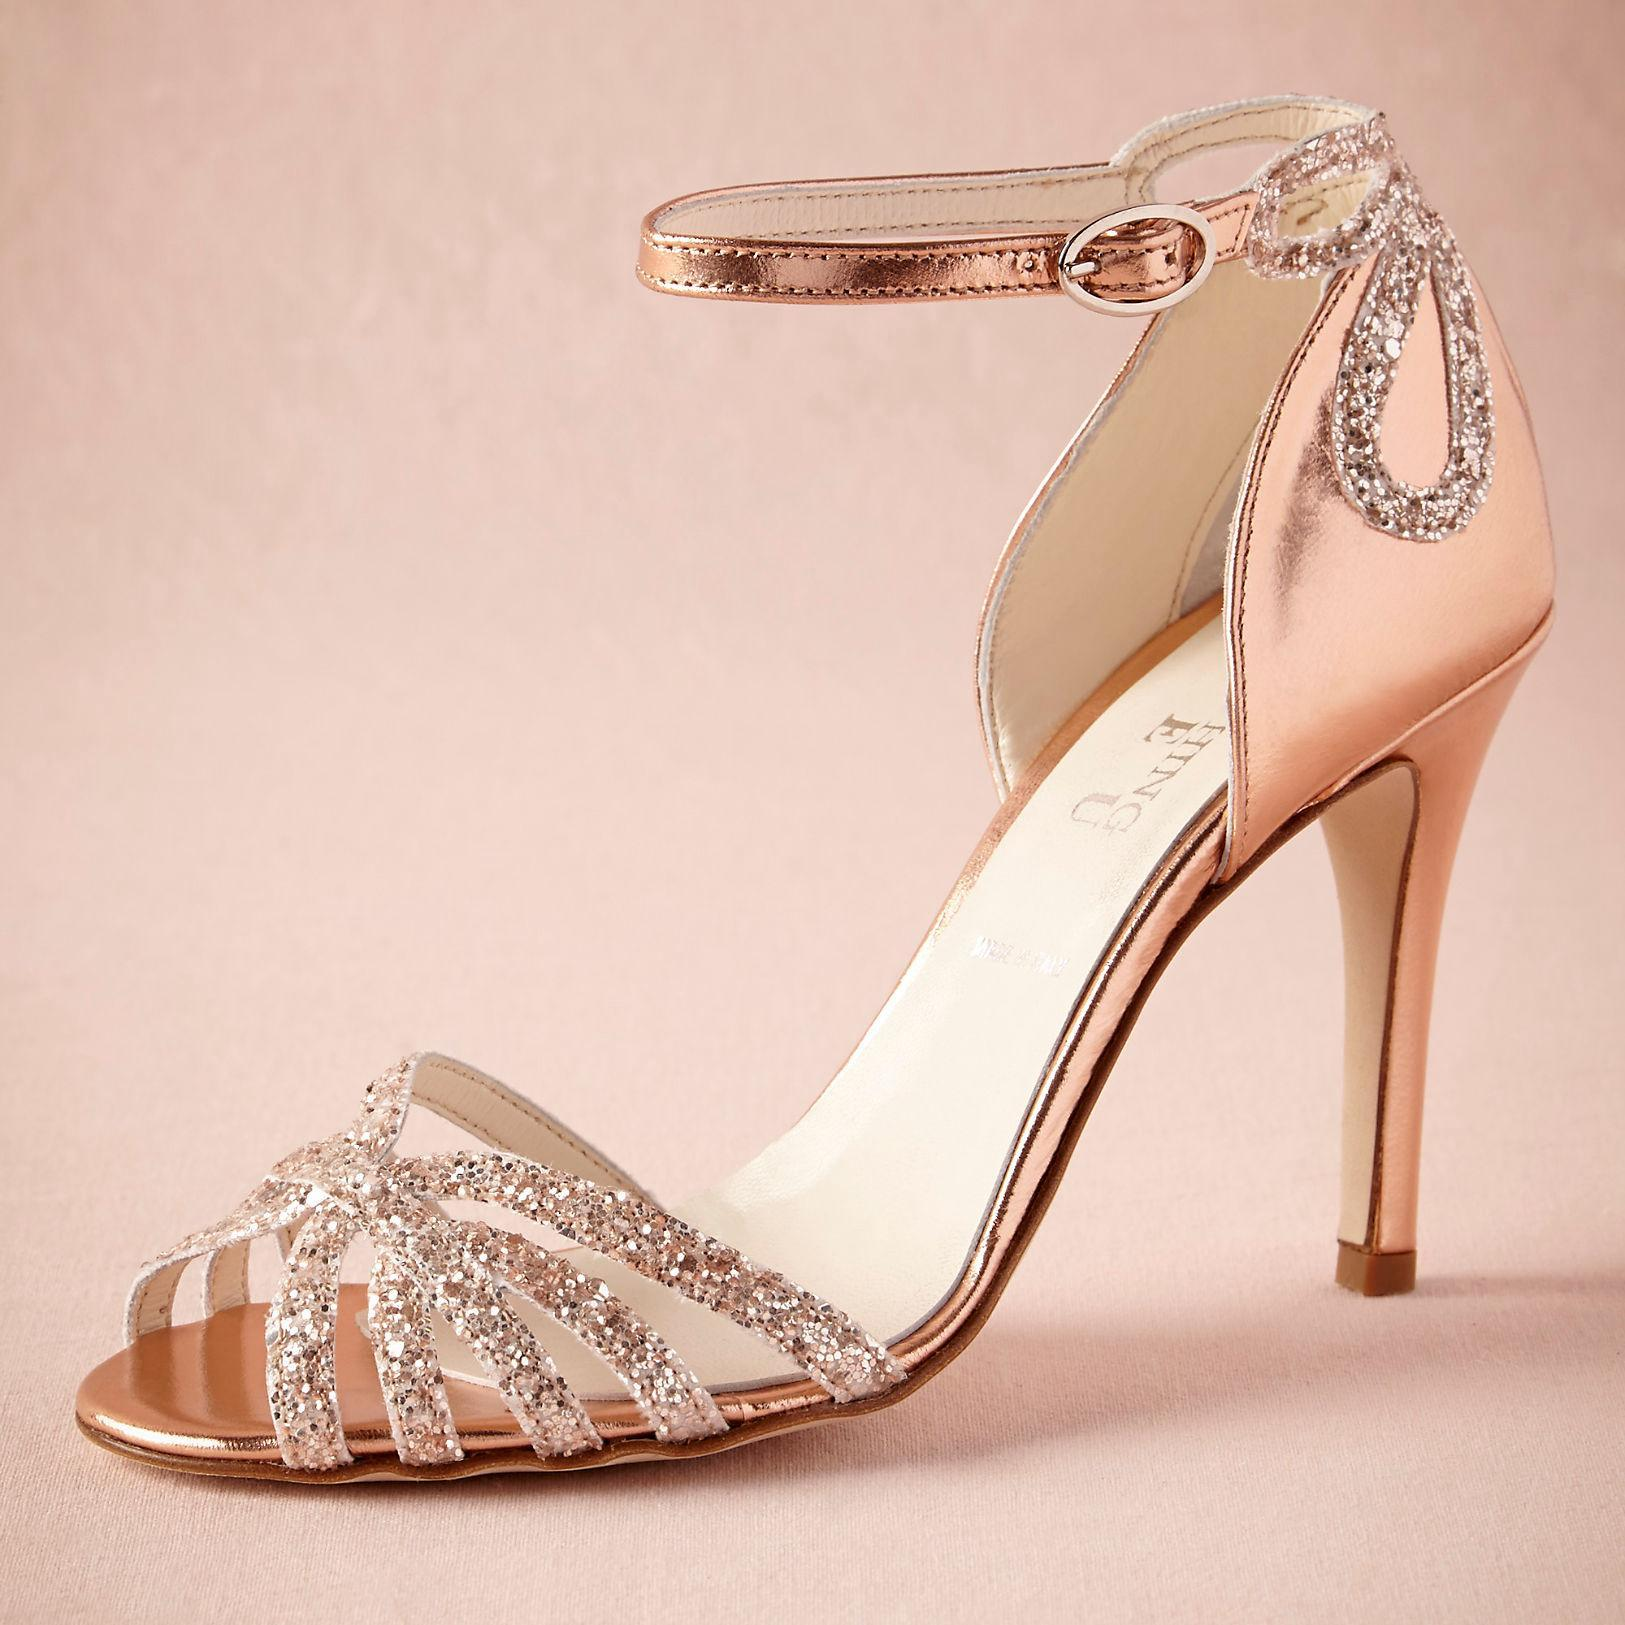 Cheap Gold Shoes Heels Pxy8nfKs